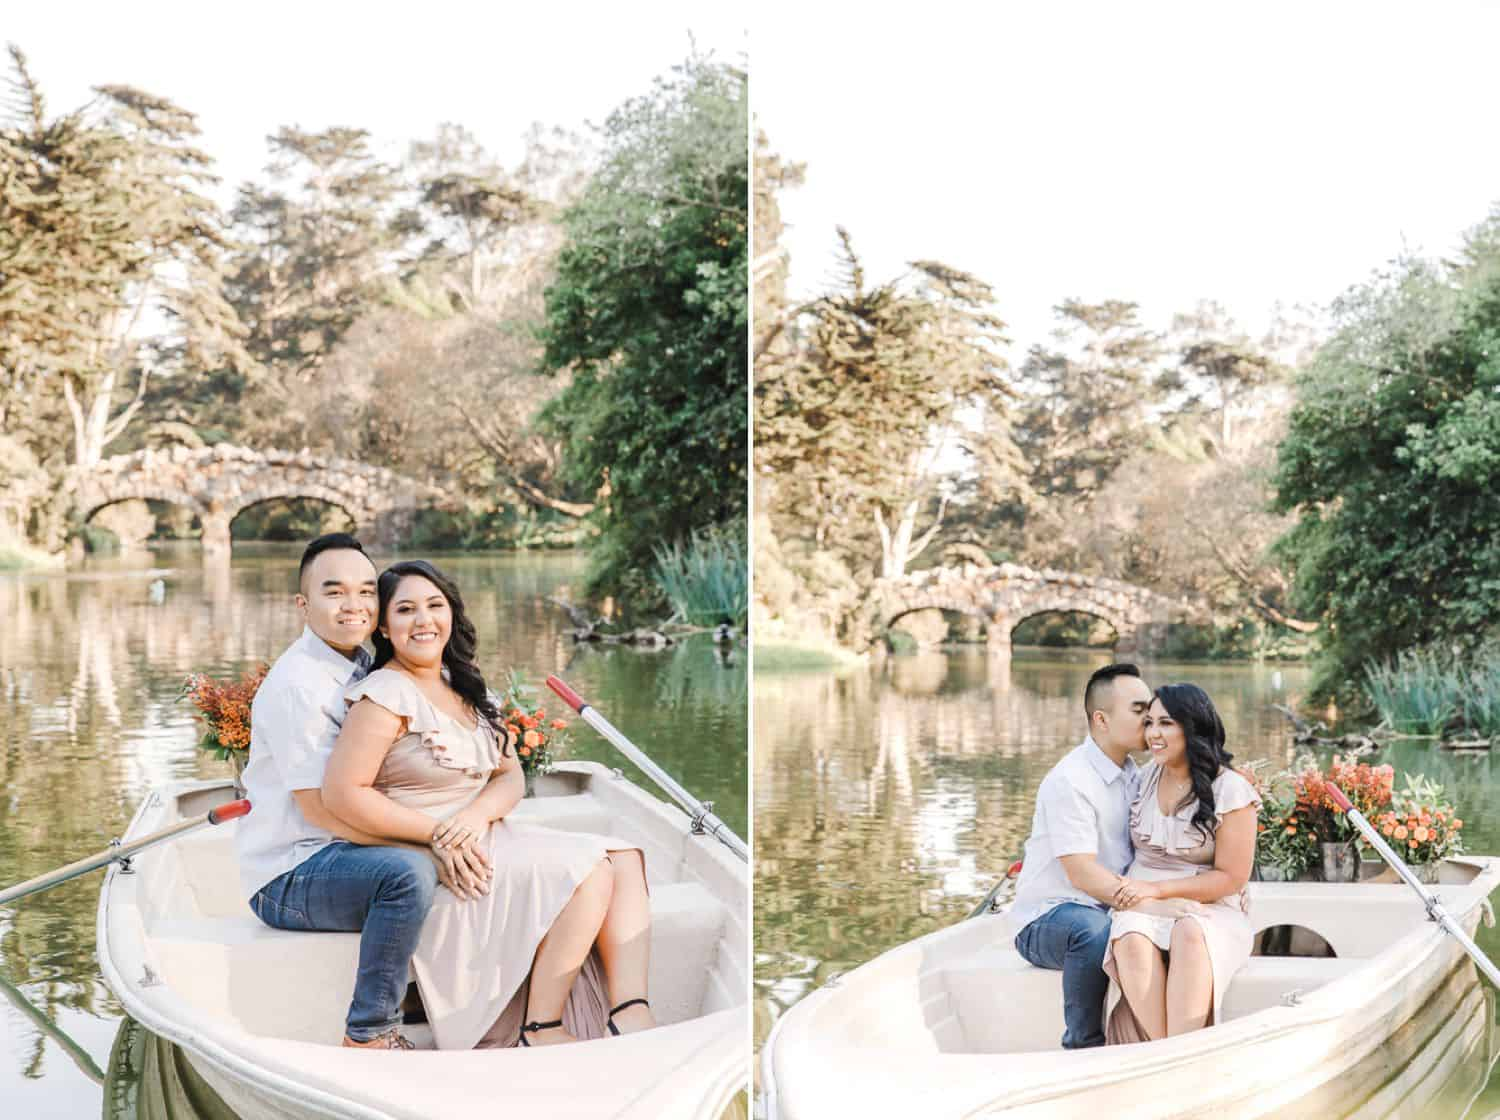 Photos of a couple together on a boat